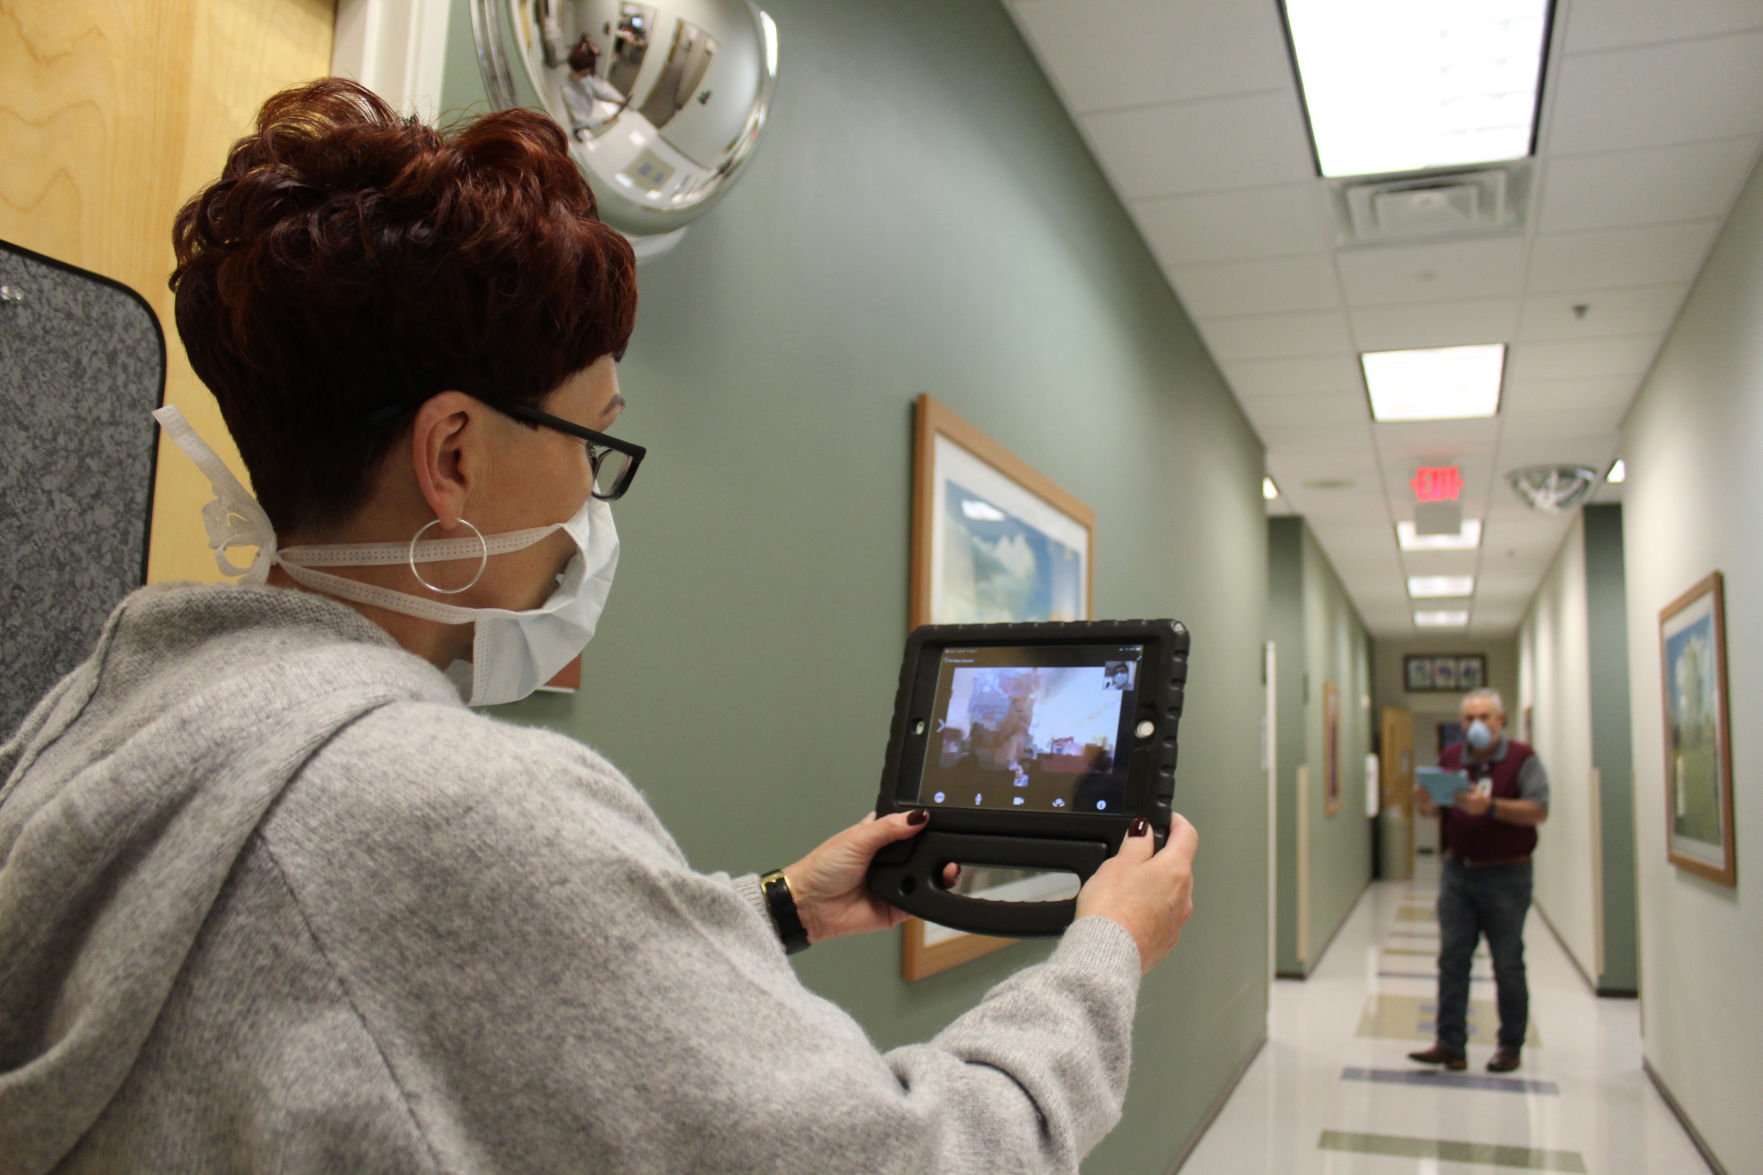 Nicole Hawkins, a health system administrator, and Ronald Twitchel, a clinical workflow analyst, show how Virtual Video Visit works, Friday, at the Killeen Medical Home, a CRDAMC health clinic in Killeen. The program allows doctors to see their patients virtually.